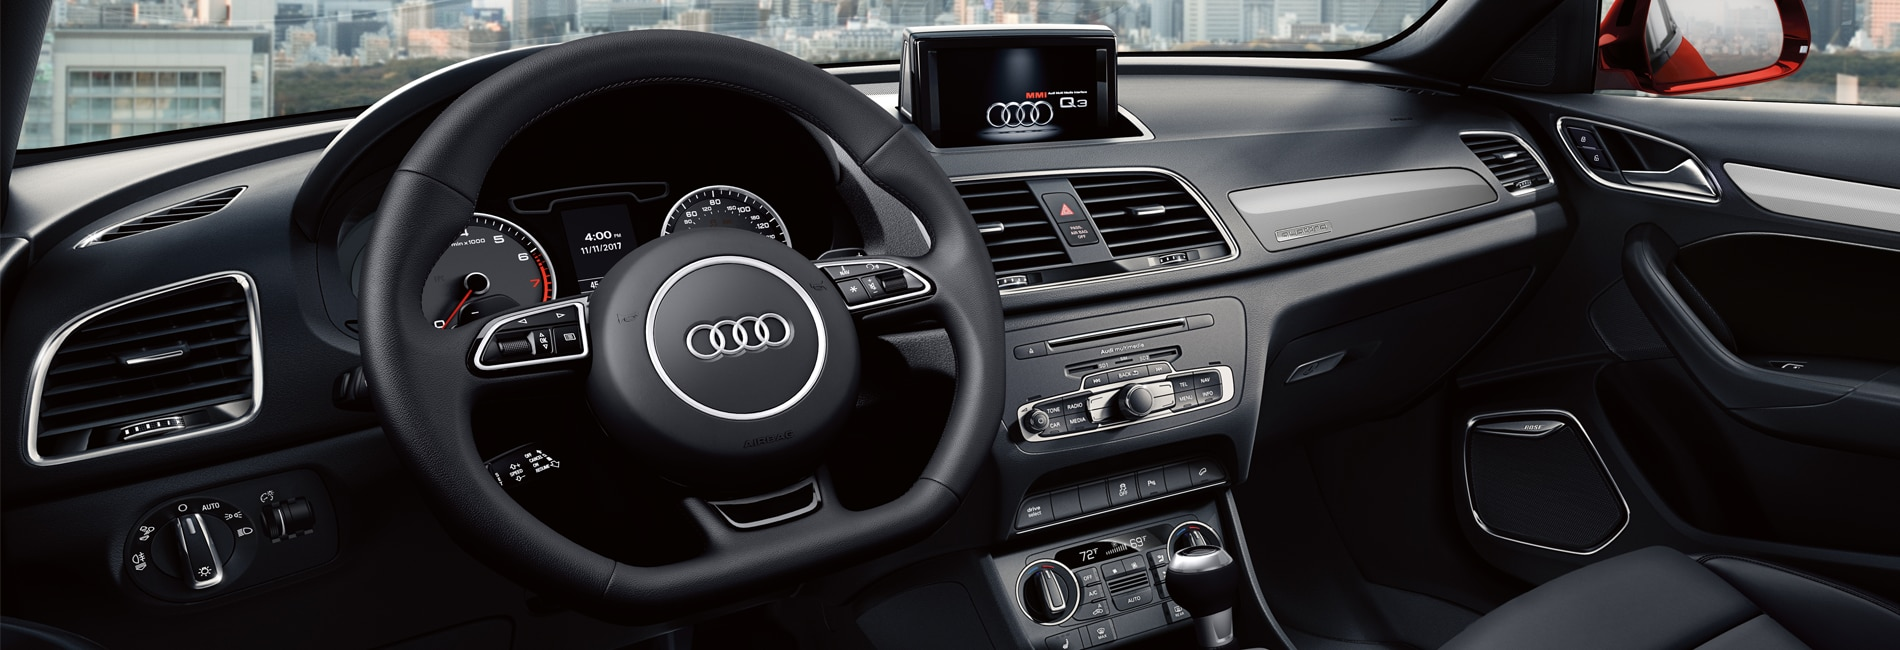 Audi Q3 Interior Vehicle Features